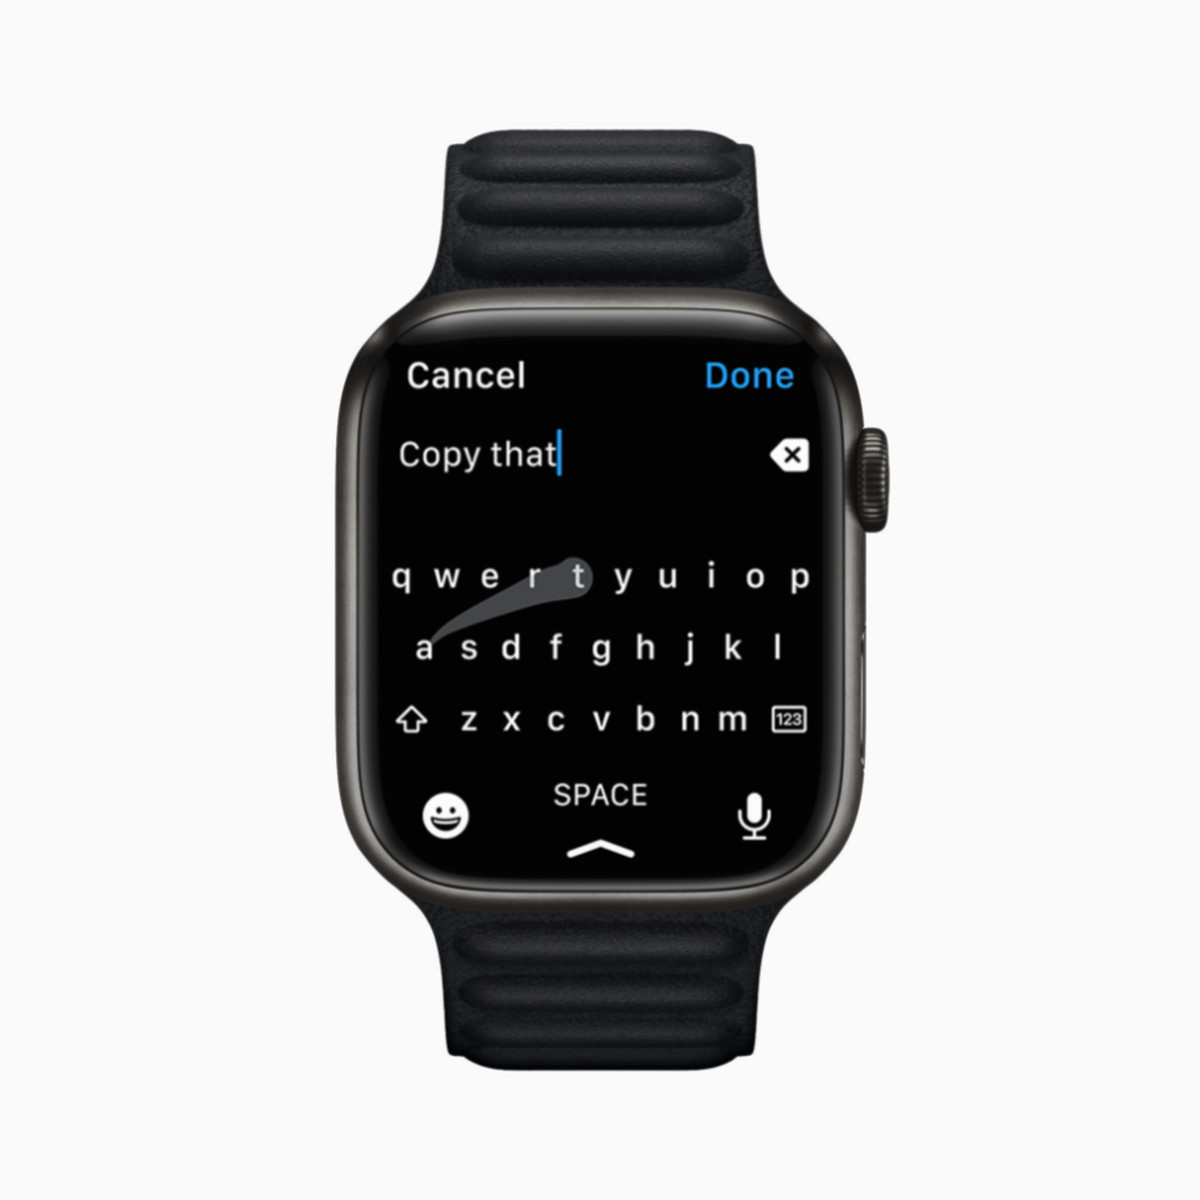 Apple Watch Series 7 how to reserve